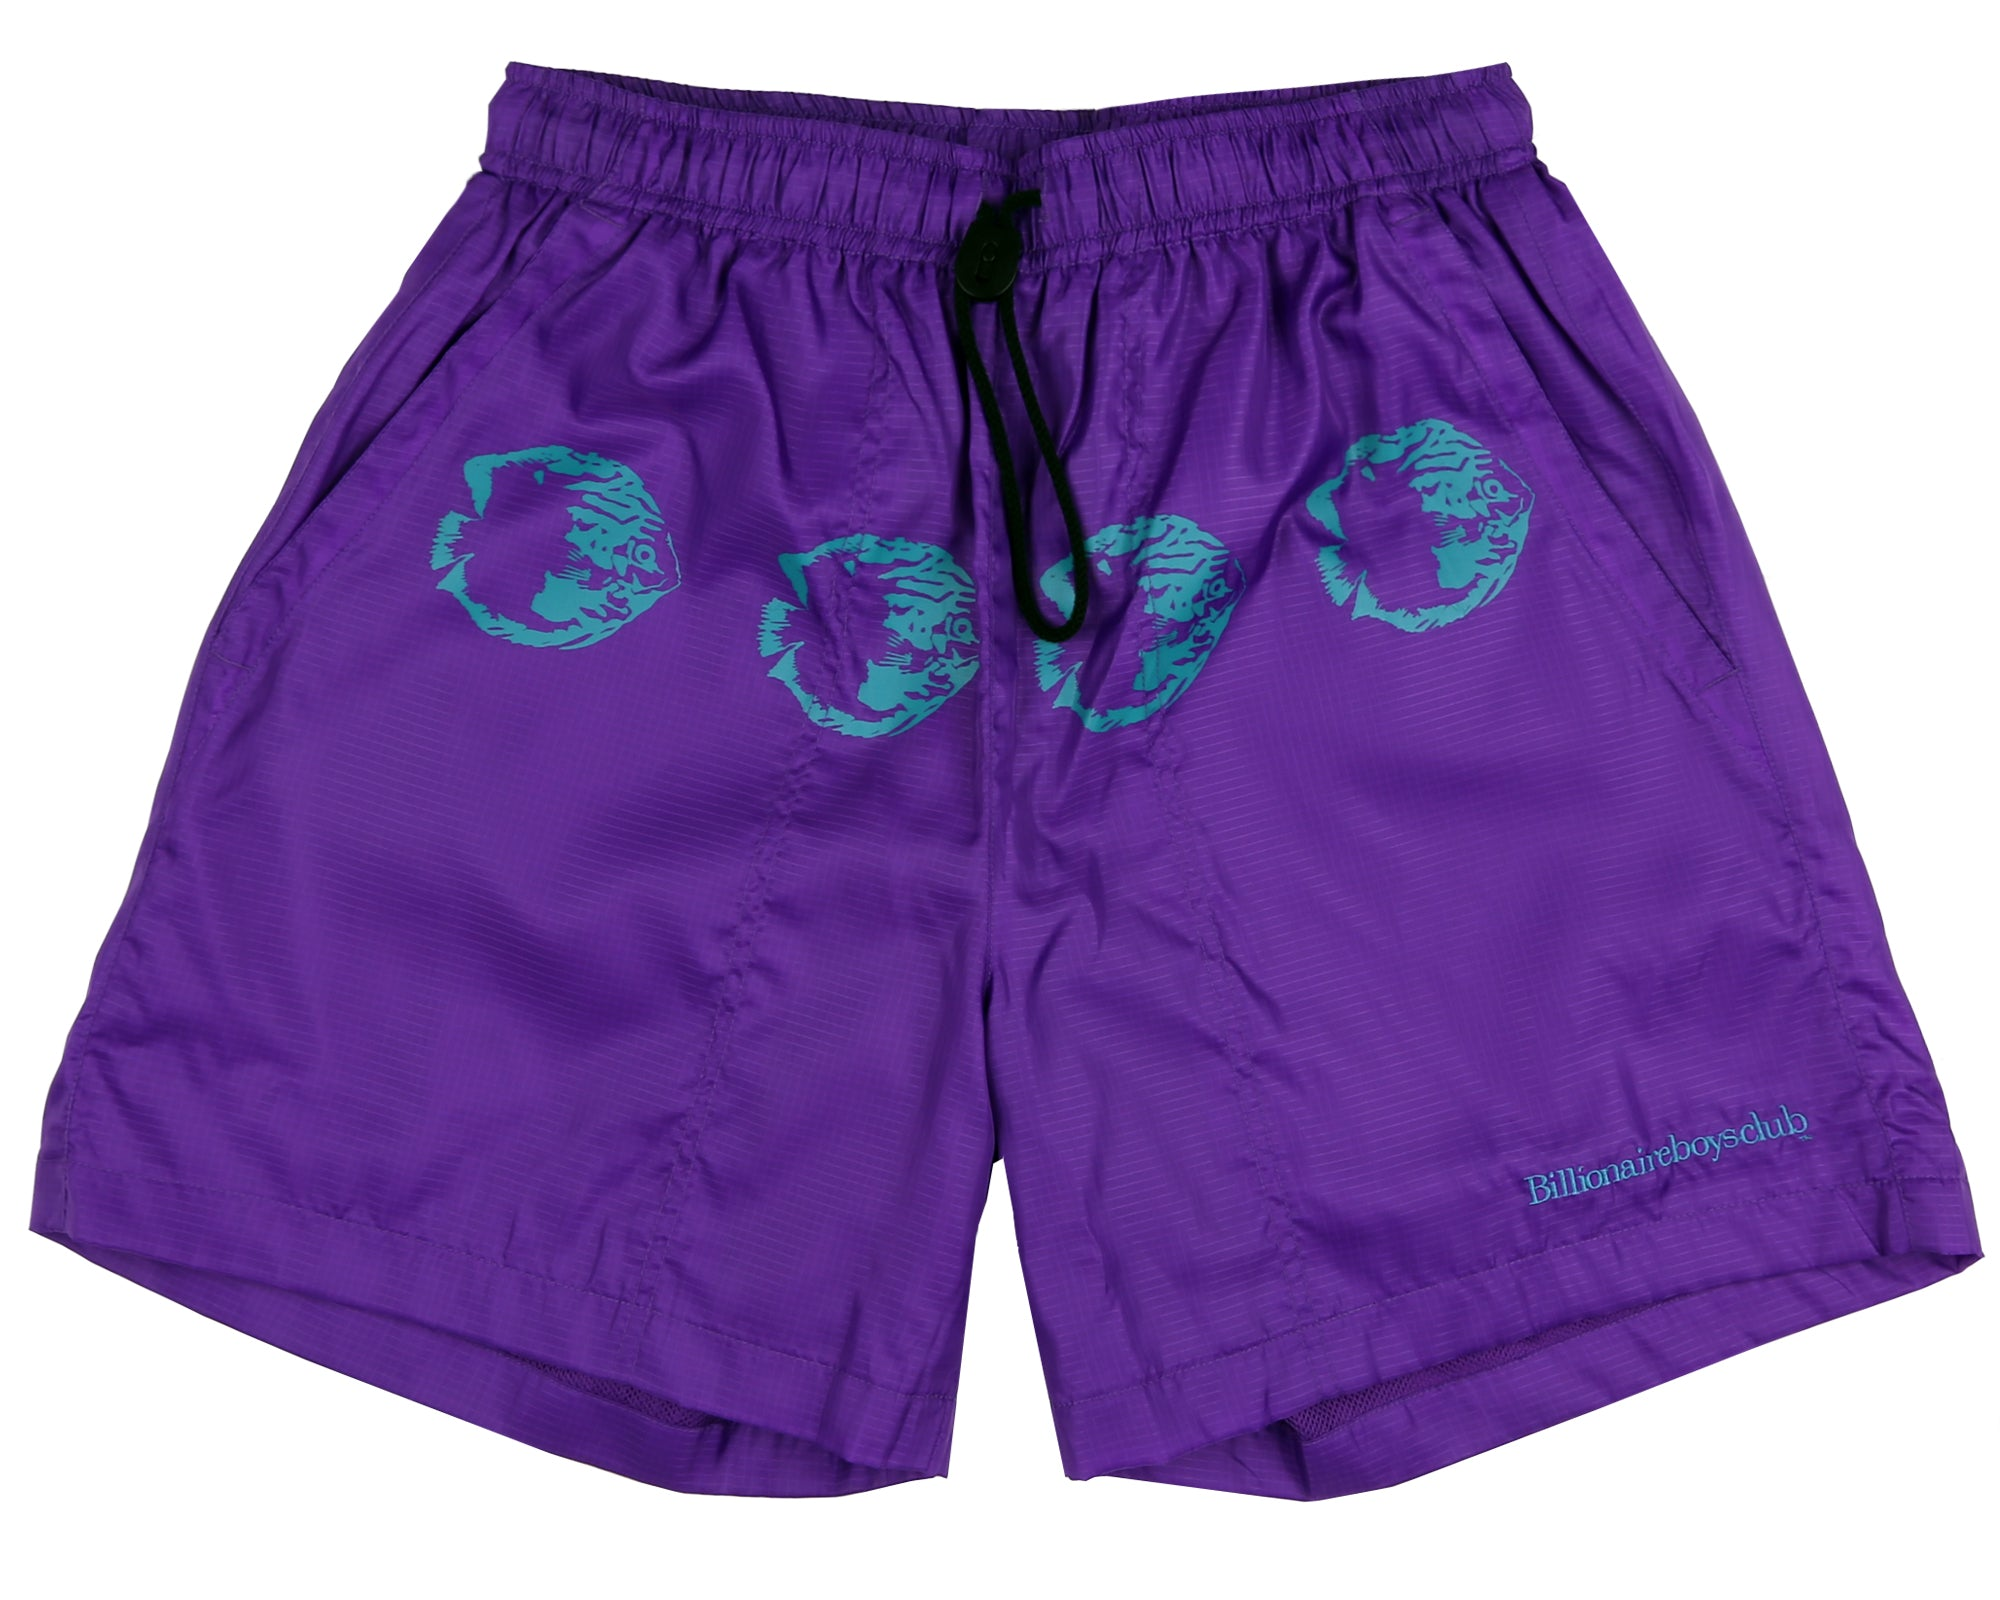 NYLON RIPSTOP SHORTS - PURPLE